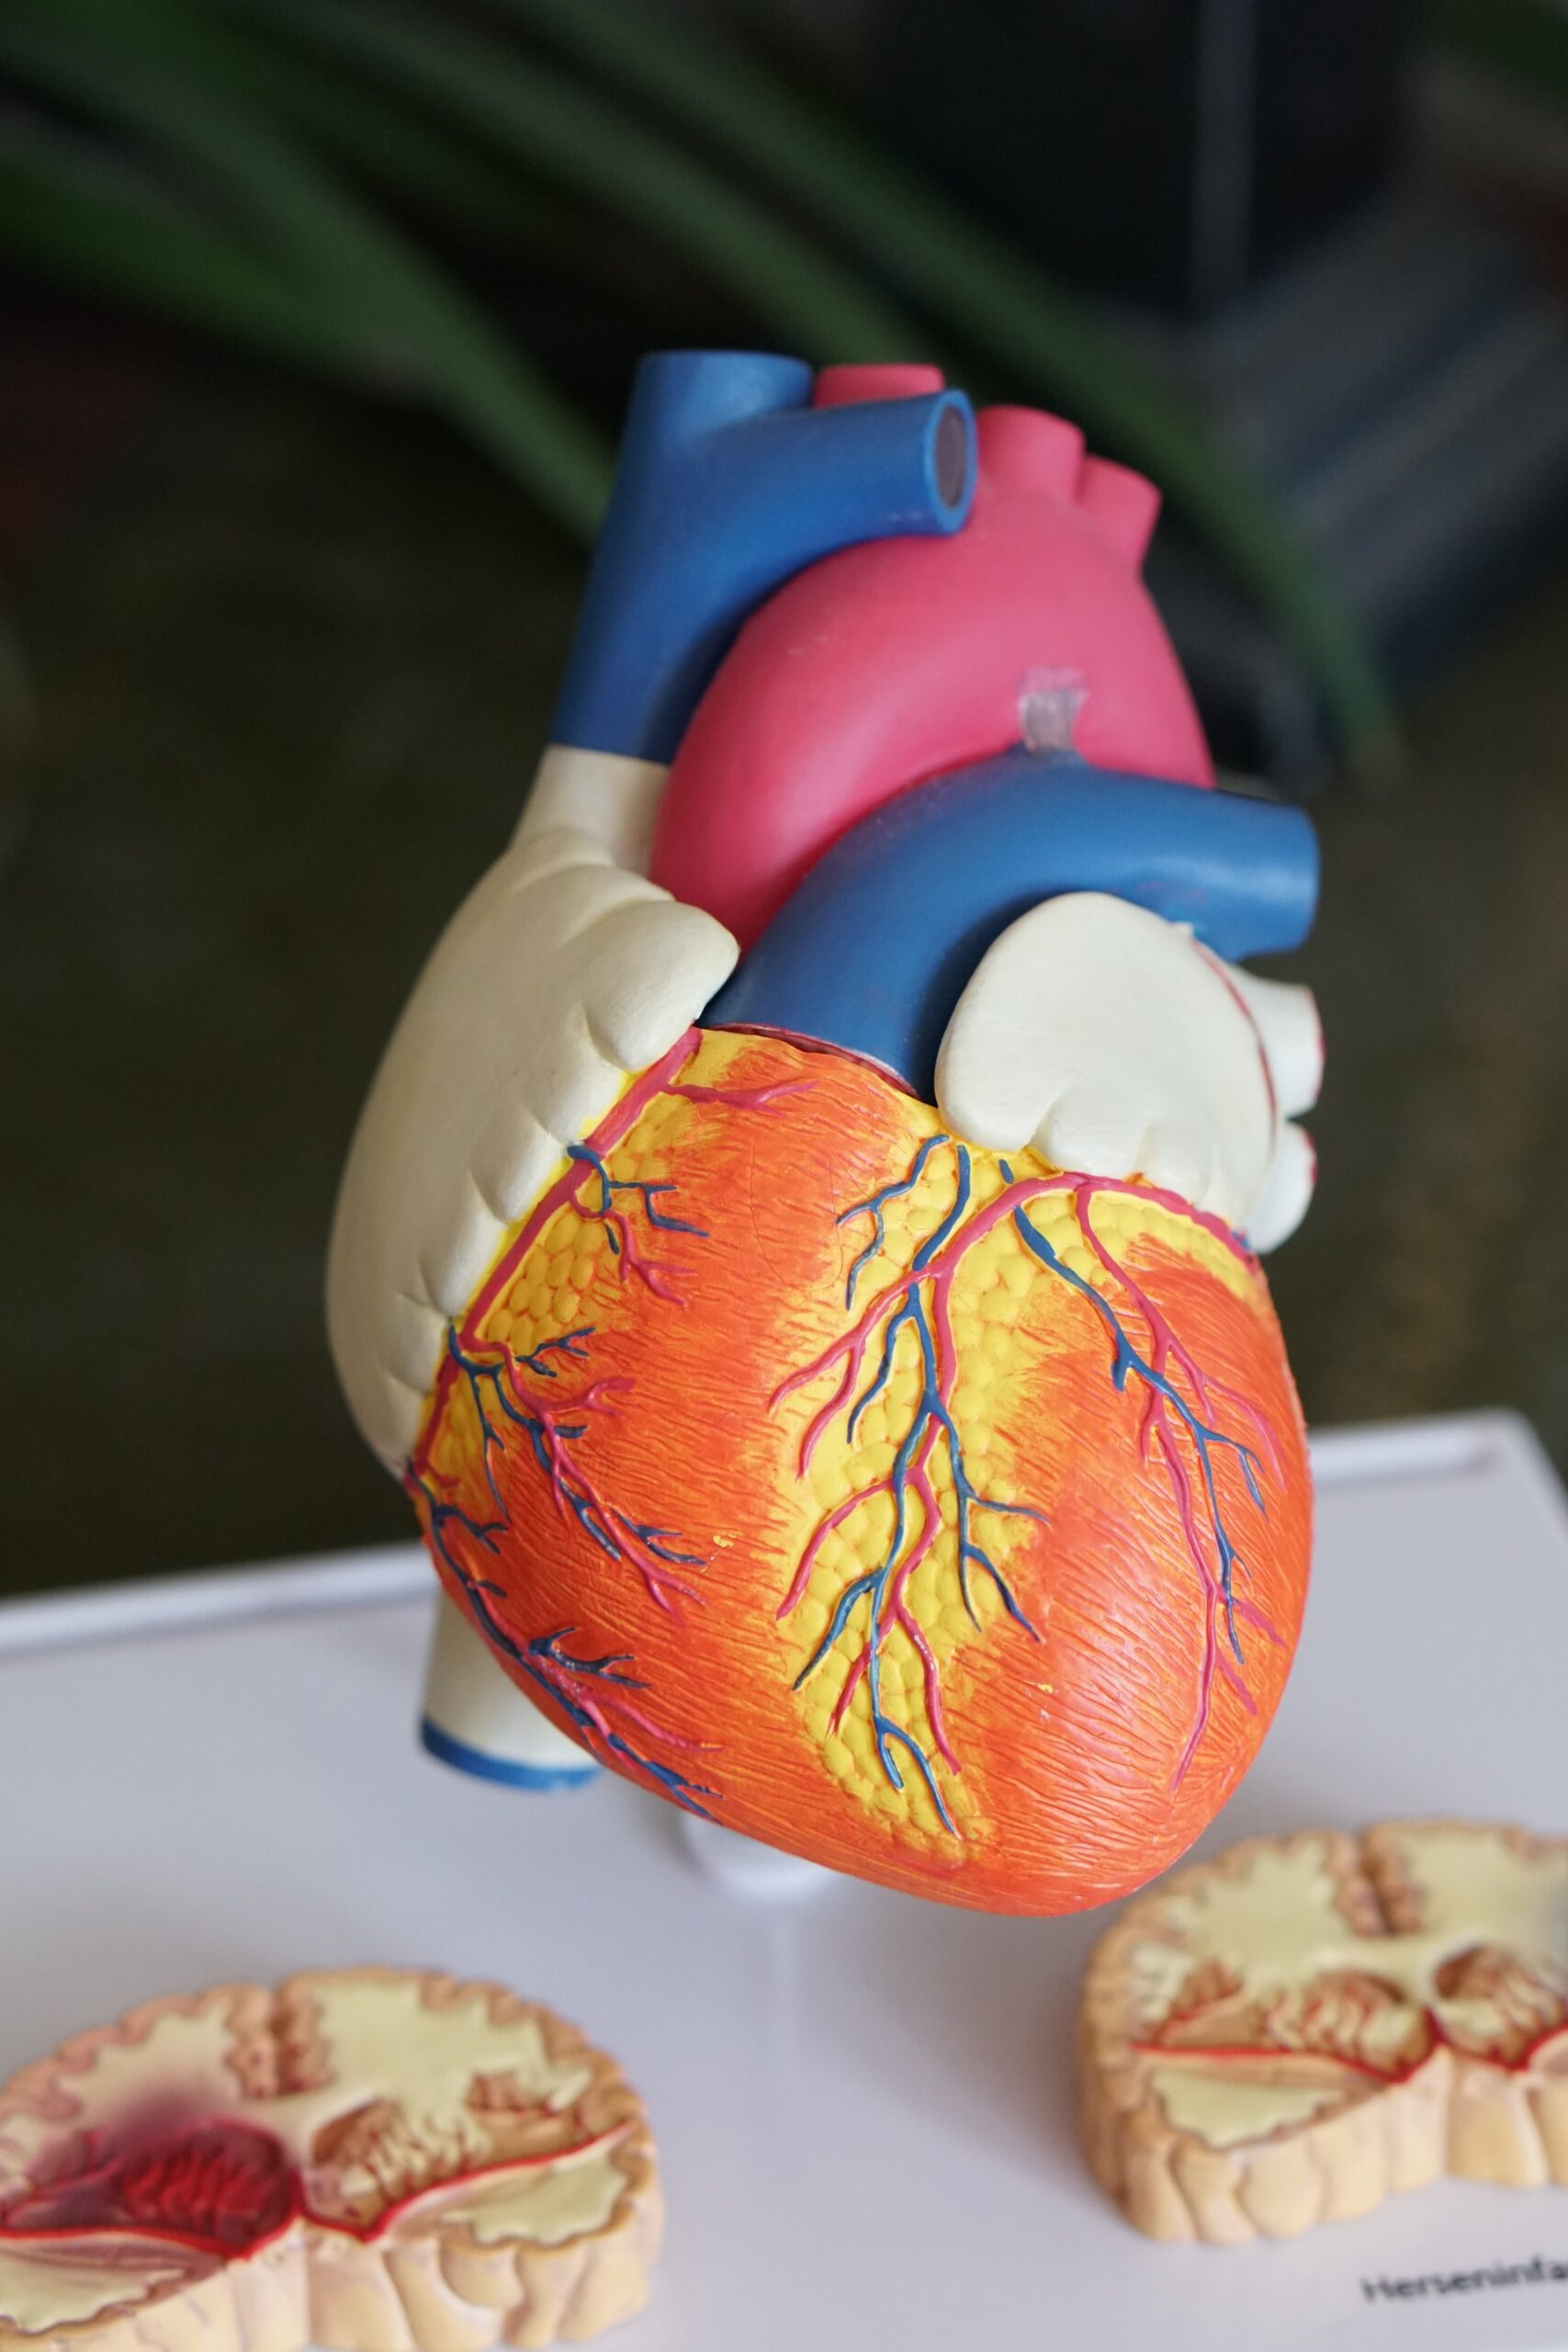 8 Weird Facts about the Human Heart